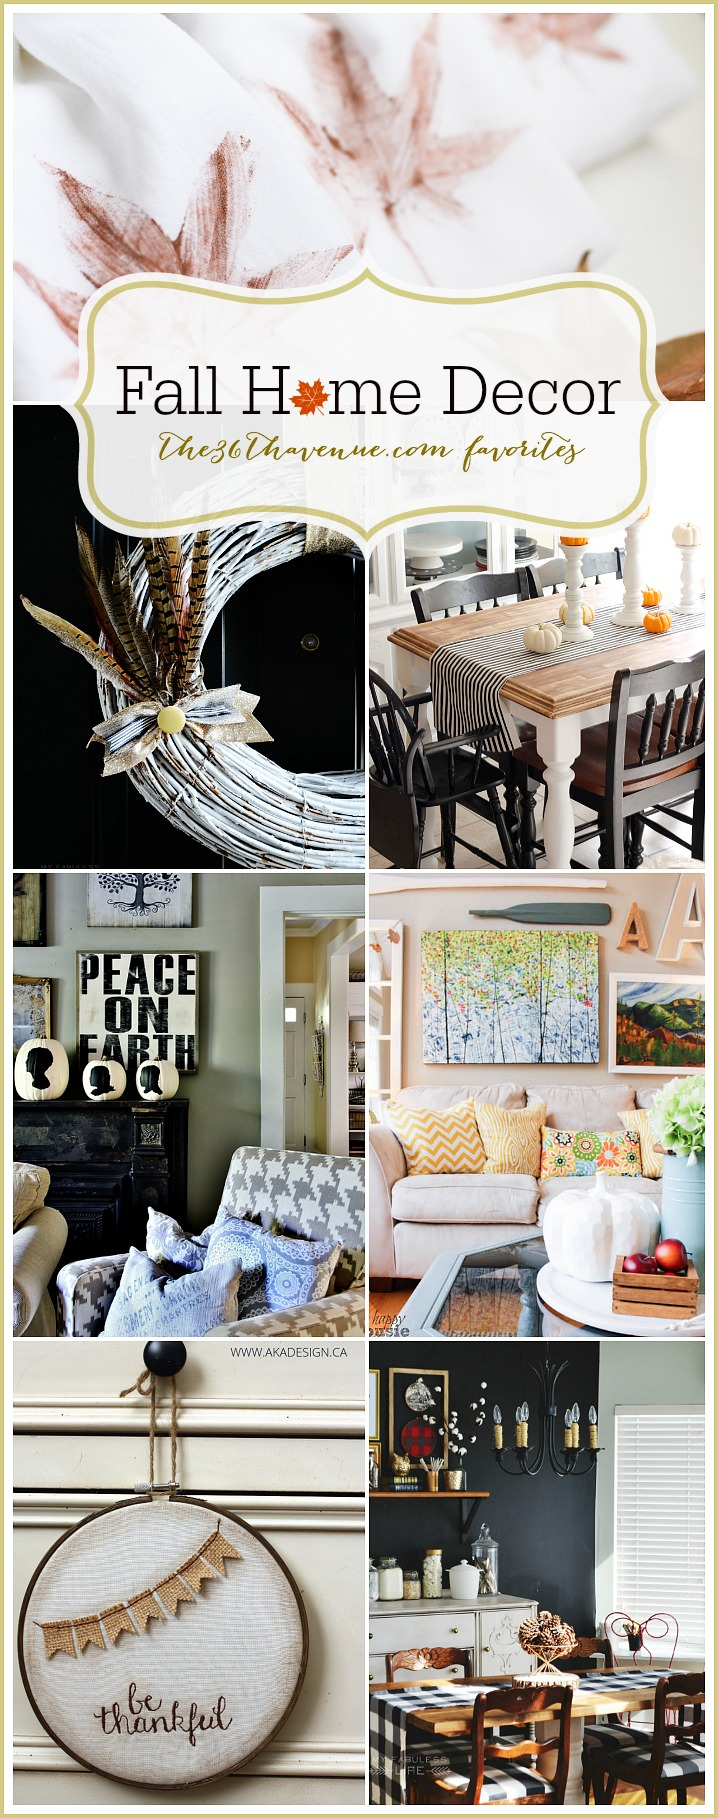 Fall Home Decor Ideas at the36thavenue.com